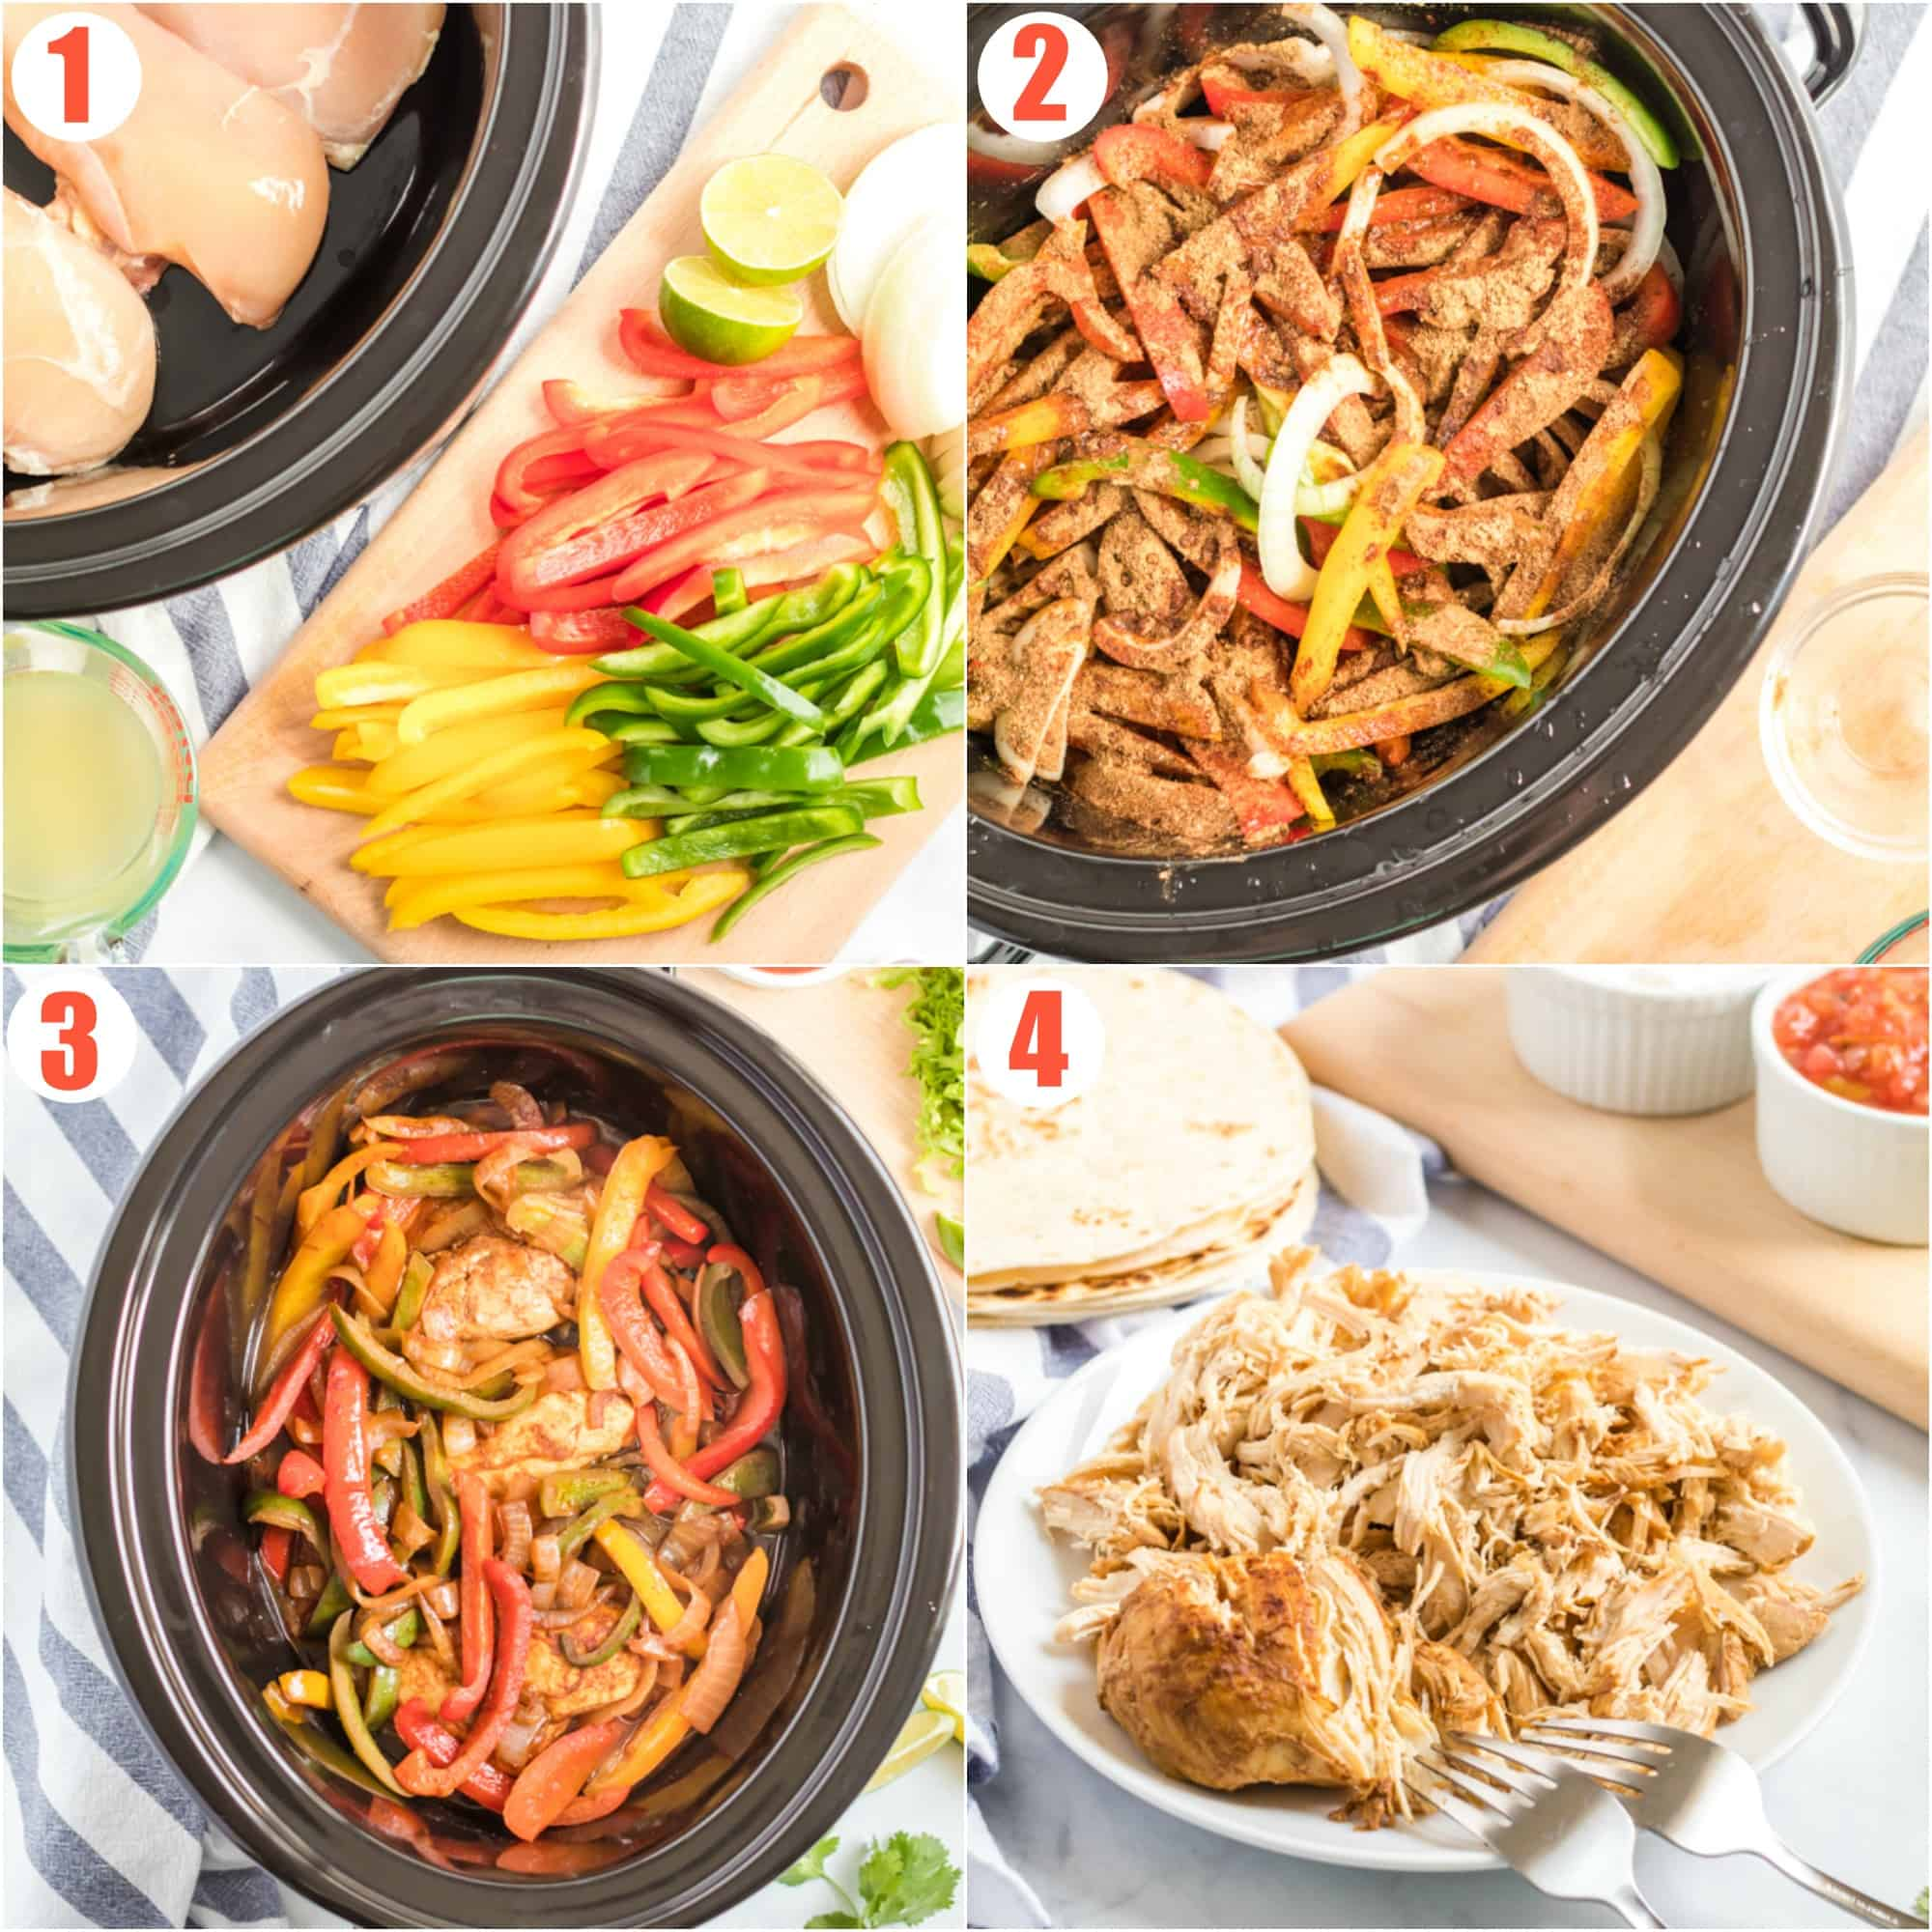 Step by step photo collage for how to make Chicken Fajitas in the crockpot.